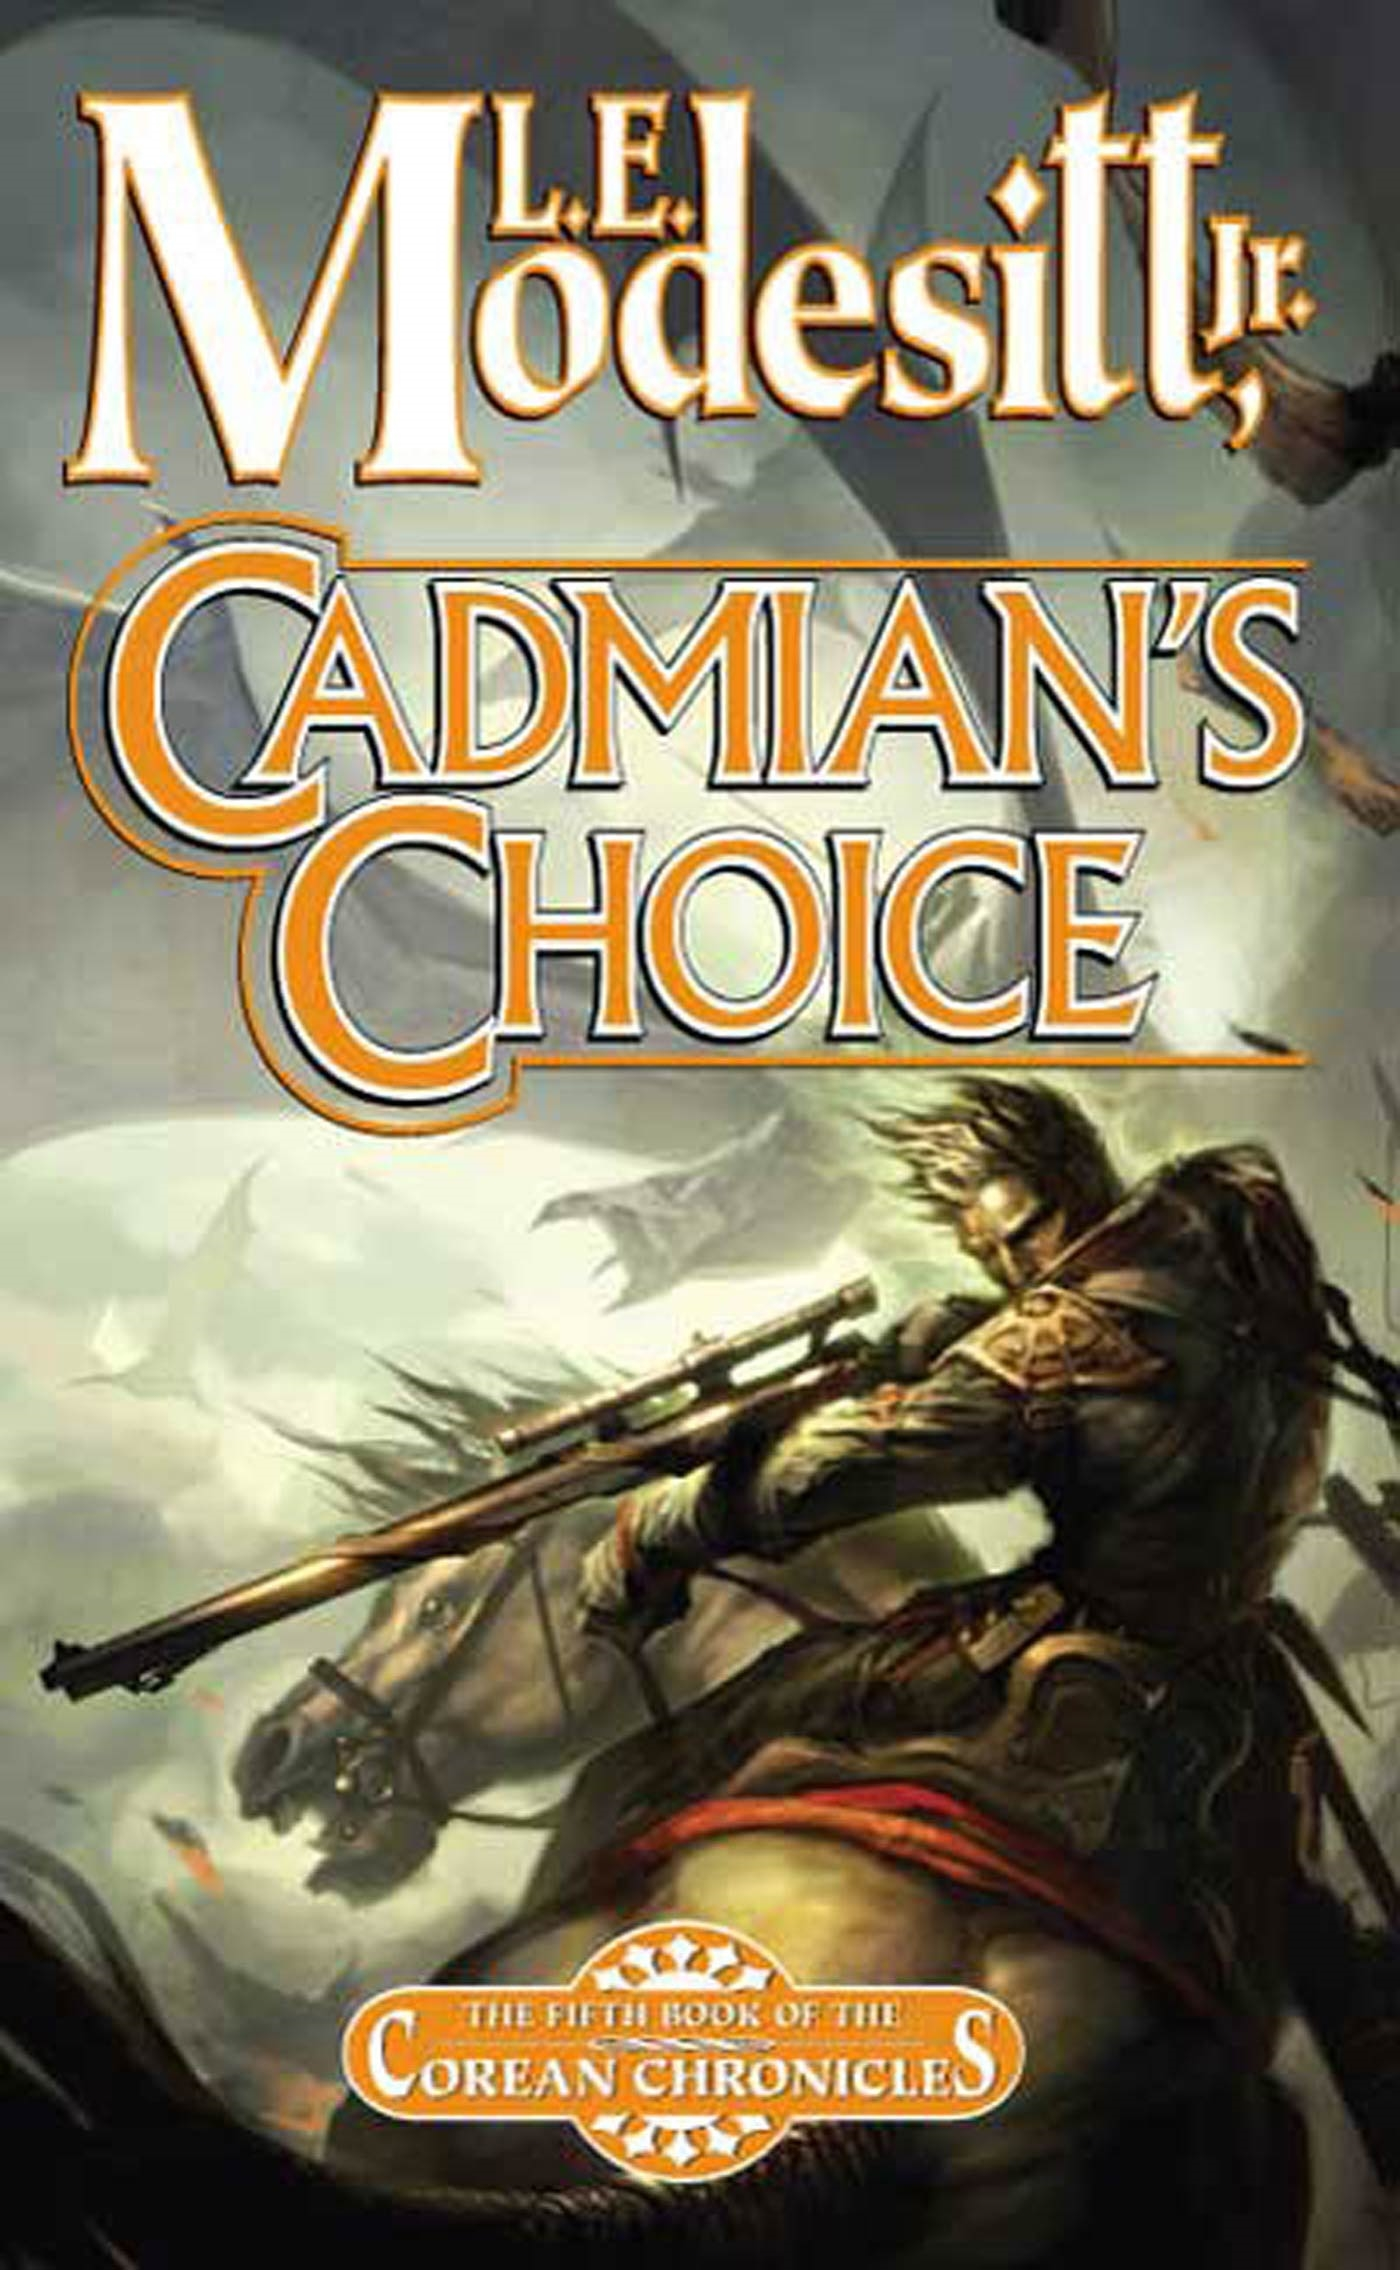 Cadmian's Choice The Fifth Book of the Corean Chronicles